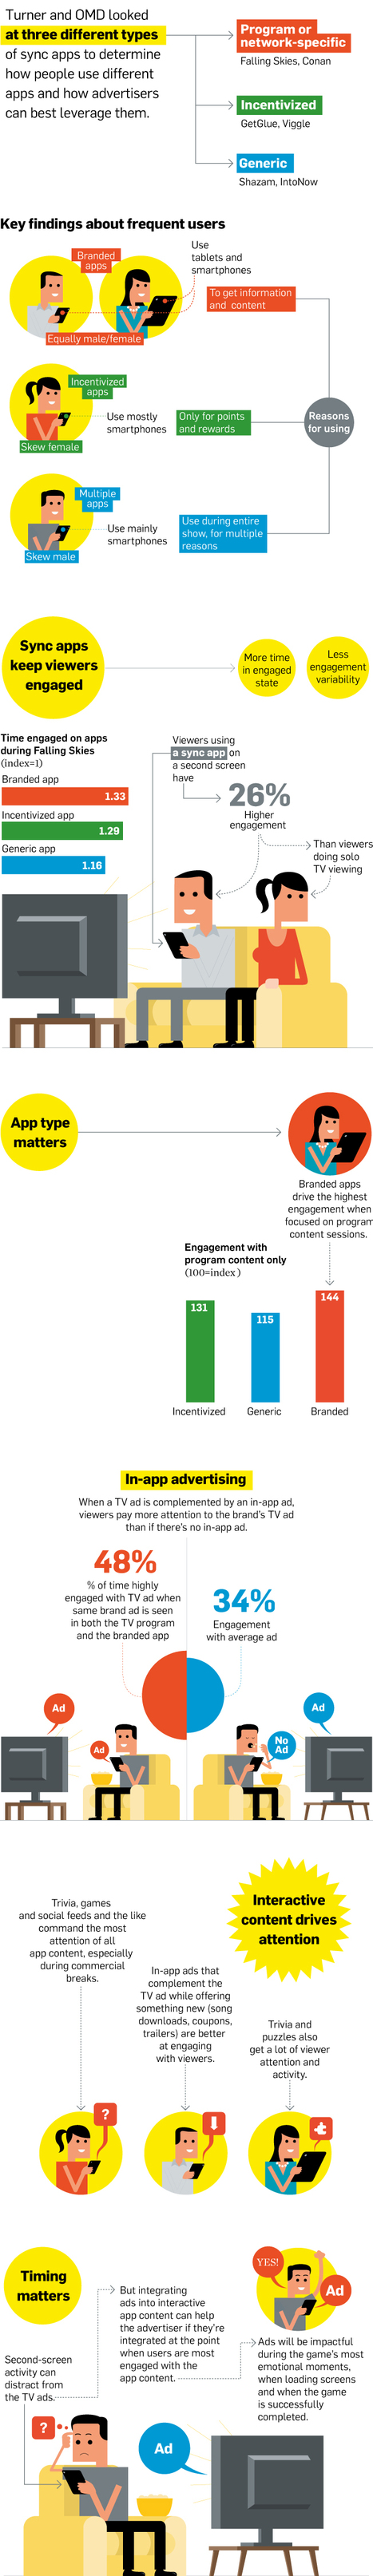 The Type of  Second-Screen Apps That Keep Users Engaged the Most   Radio 2.0 (En & Fr)   Scoop.it